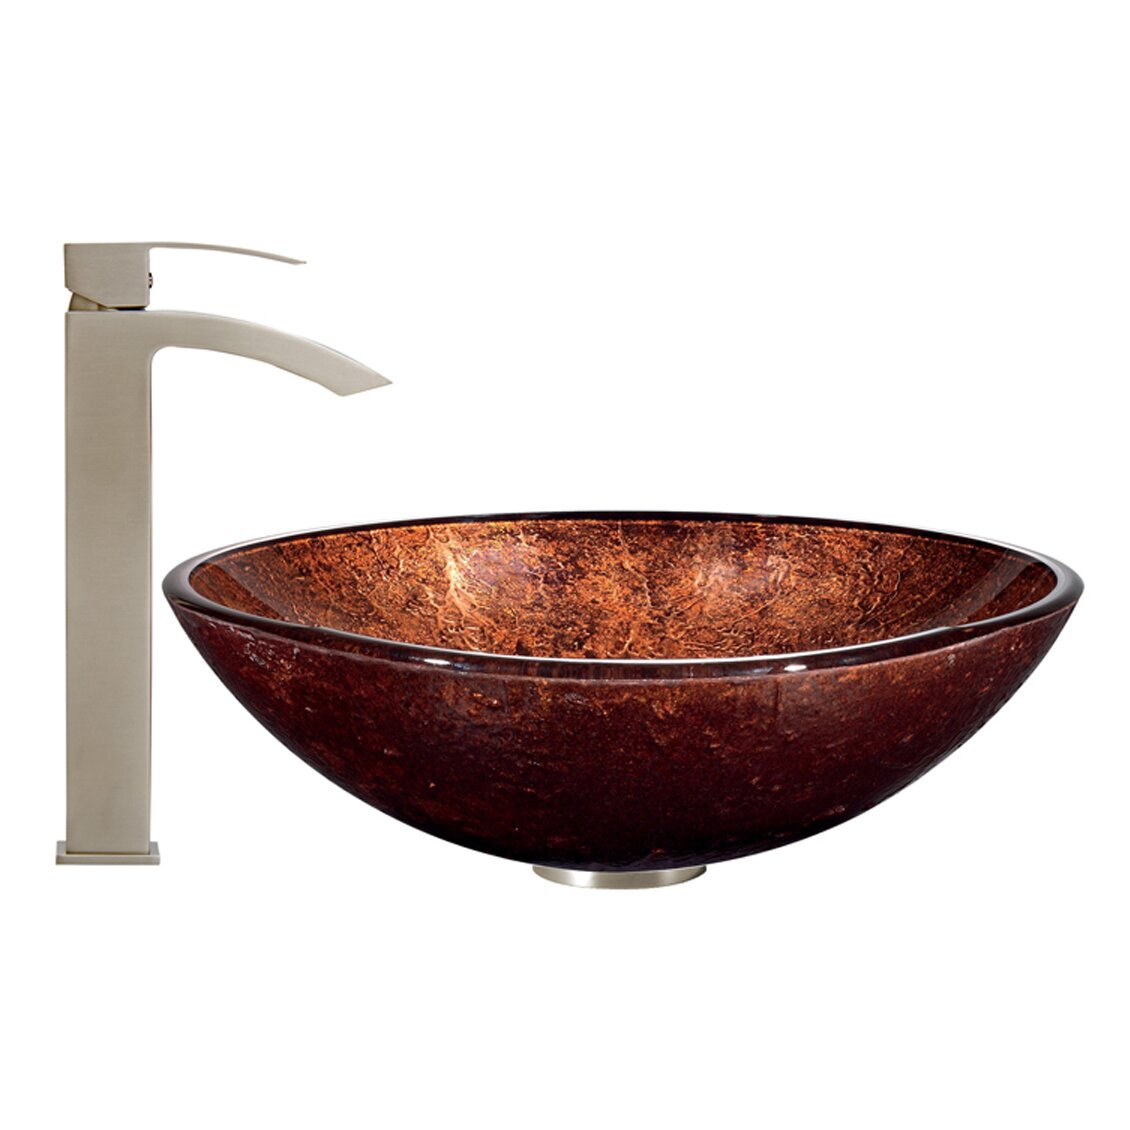 vigo bathroom sinks vigo vessel bathroom sink and duris faucet wayfair 14952